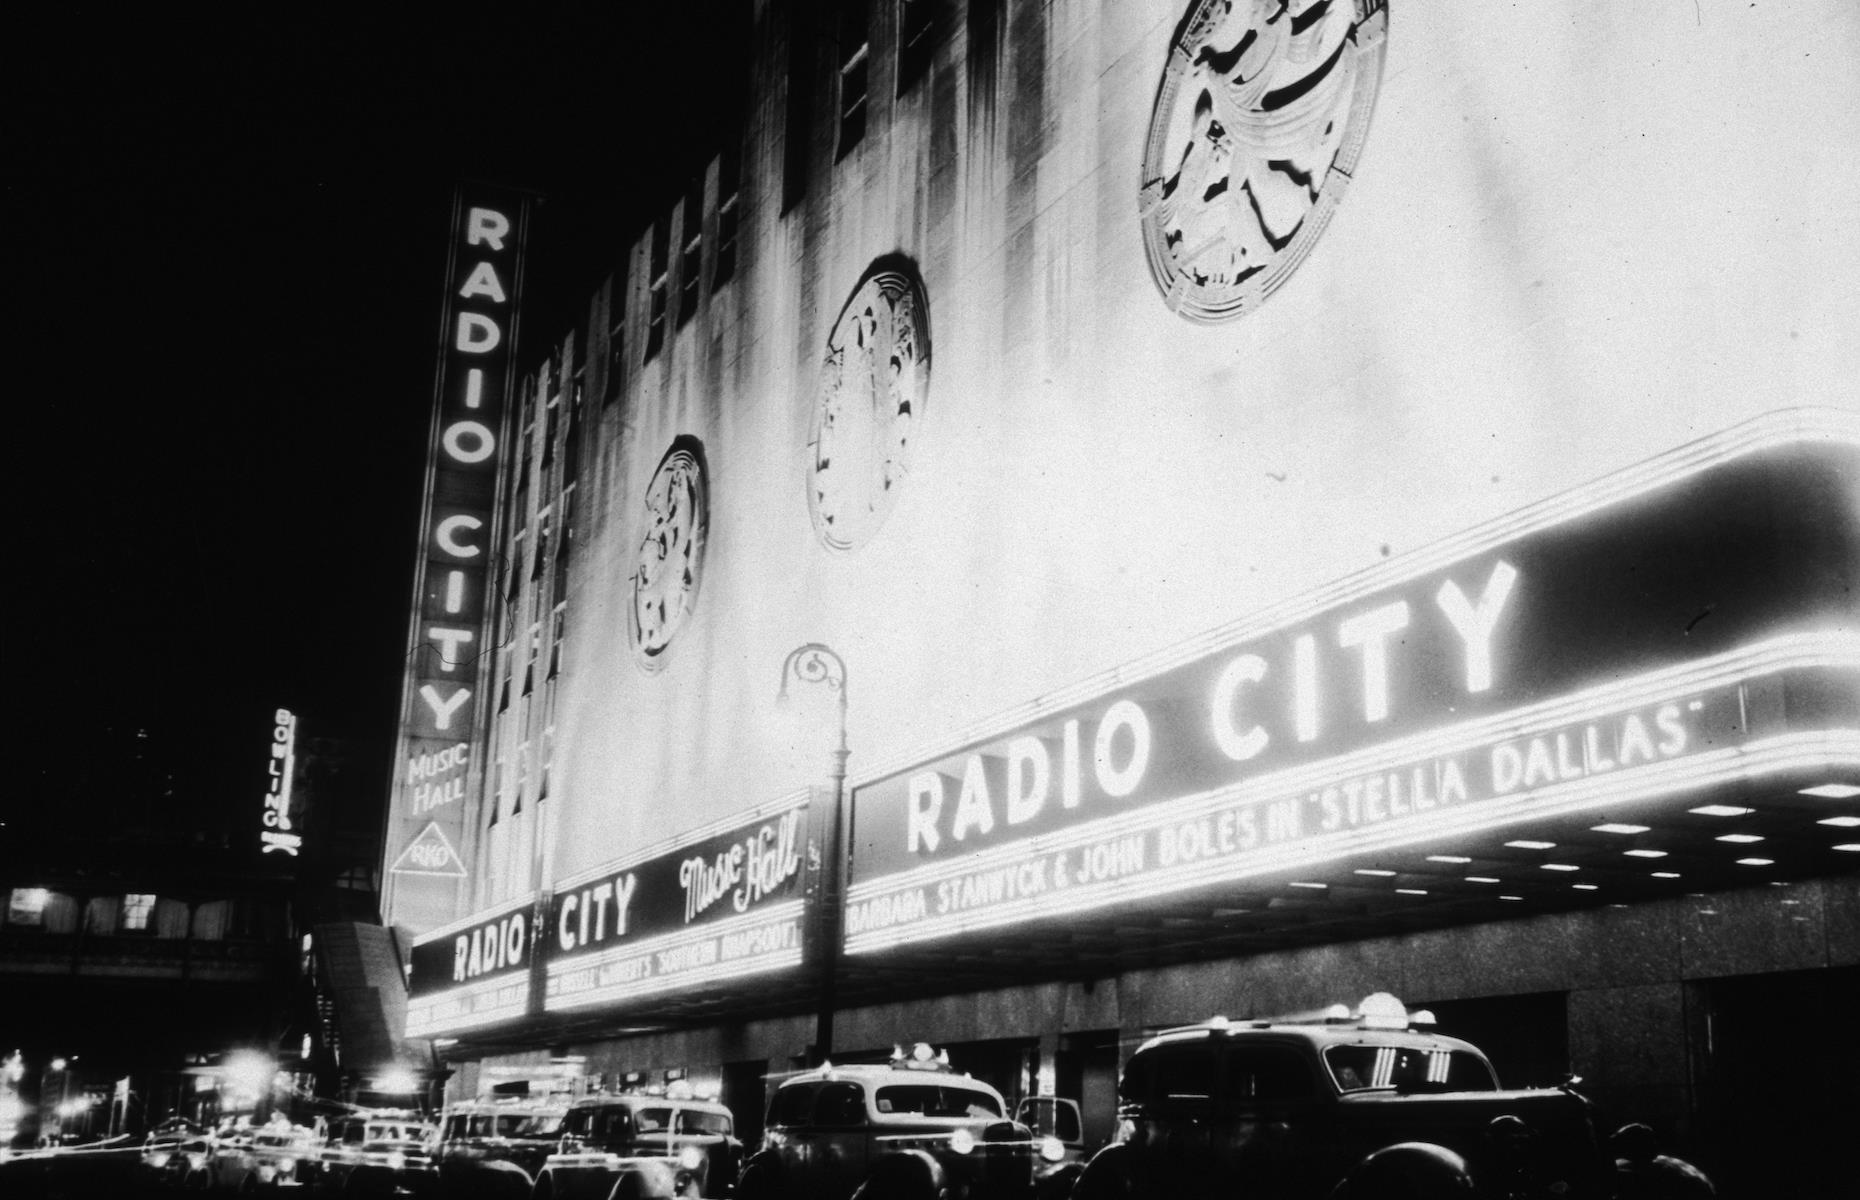 """Slide 20 of 48: Manhattan's legendary venue, Radio City Music Hall, first opened on Sixth Avenue in 1932 as a cornerstone of John D. Rockefeller Jr's subsequent Rockefeller Center. The Art Deco theater was conceived as a """"palace for the people"""", offering top entertainment at affordable prices. It became a popular spot for film premieres with 700 movies having opened here since 1933, including the original King Kong and Breakfast at Tiffany's. Its Great Stage has also welcomed legendary artists such as Frank Sinatra."""